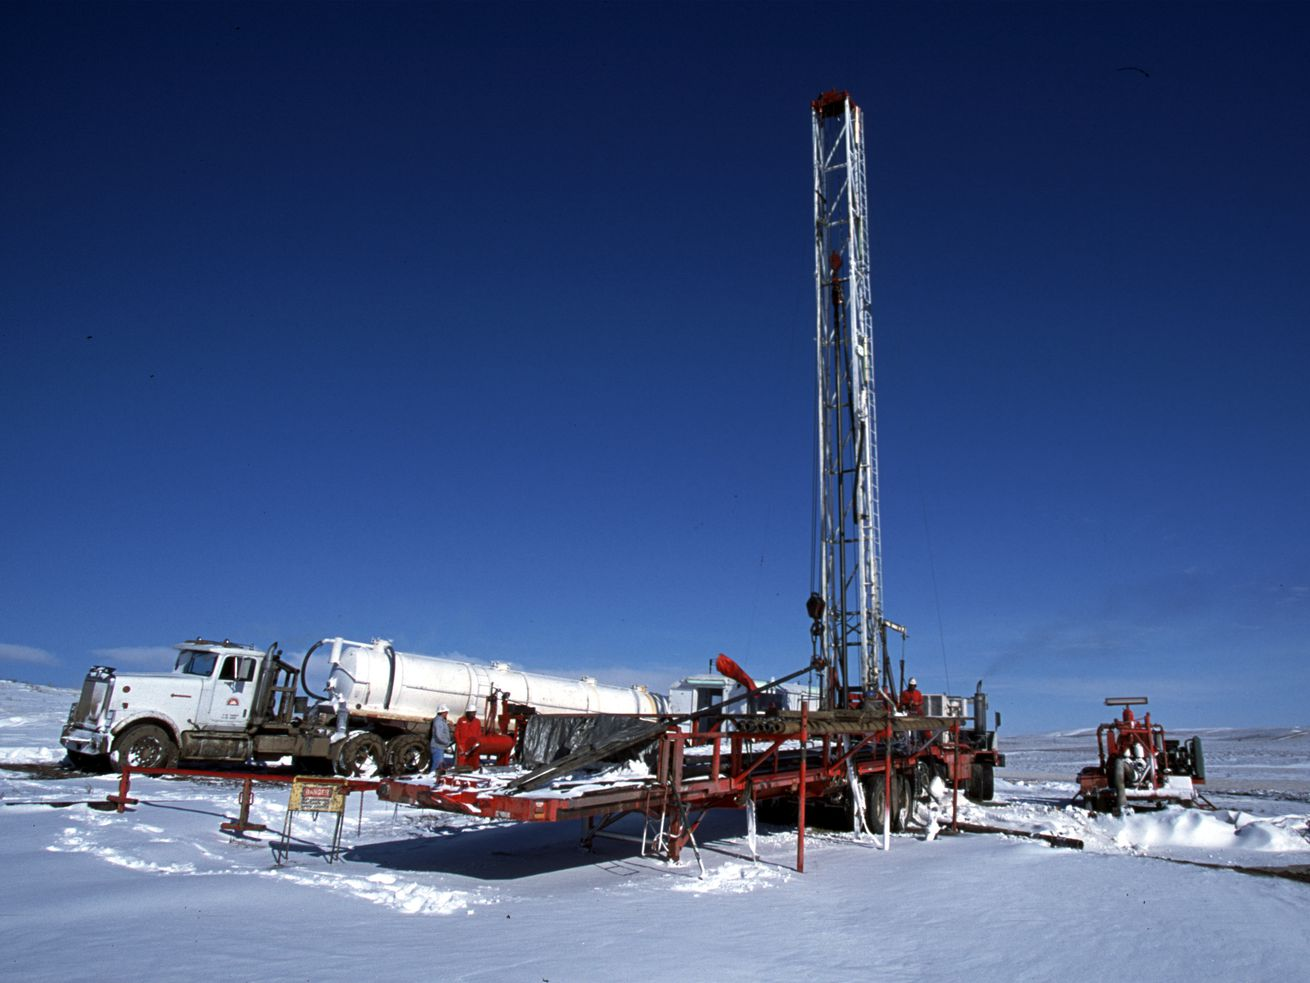 A mobile natural drilling rig in Gillette, Wyoming, sets up amid snow. Extreme cold this week has increased natural gas demand, so some utilities have asked customers to lower their heat.